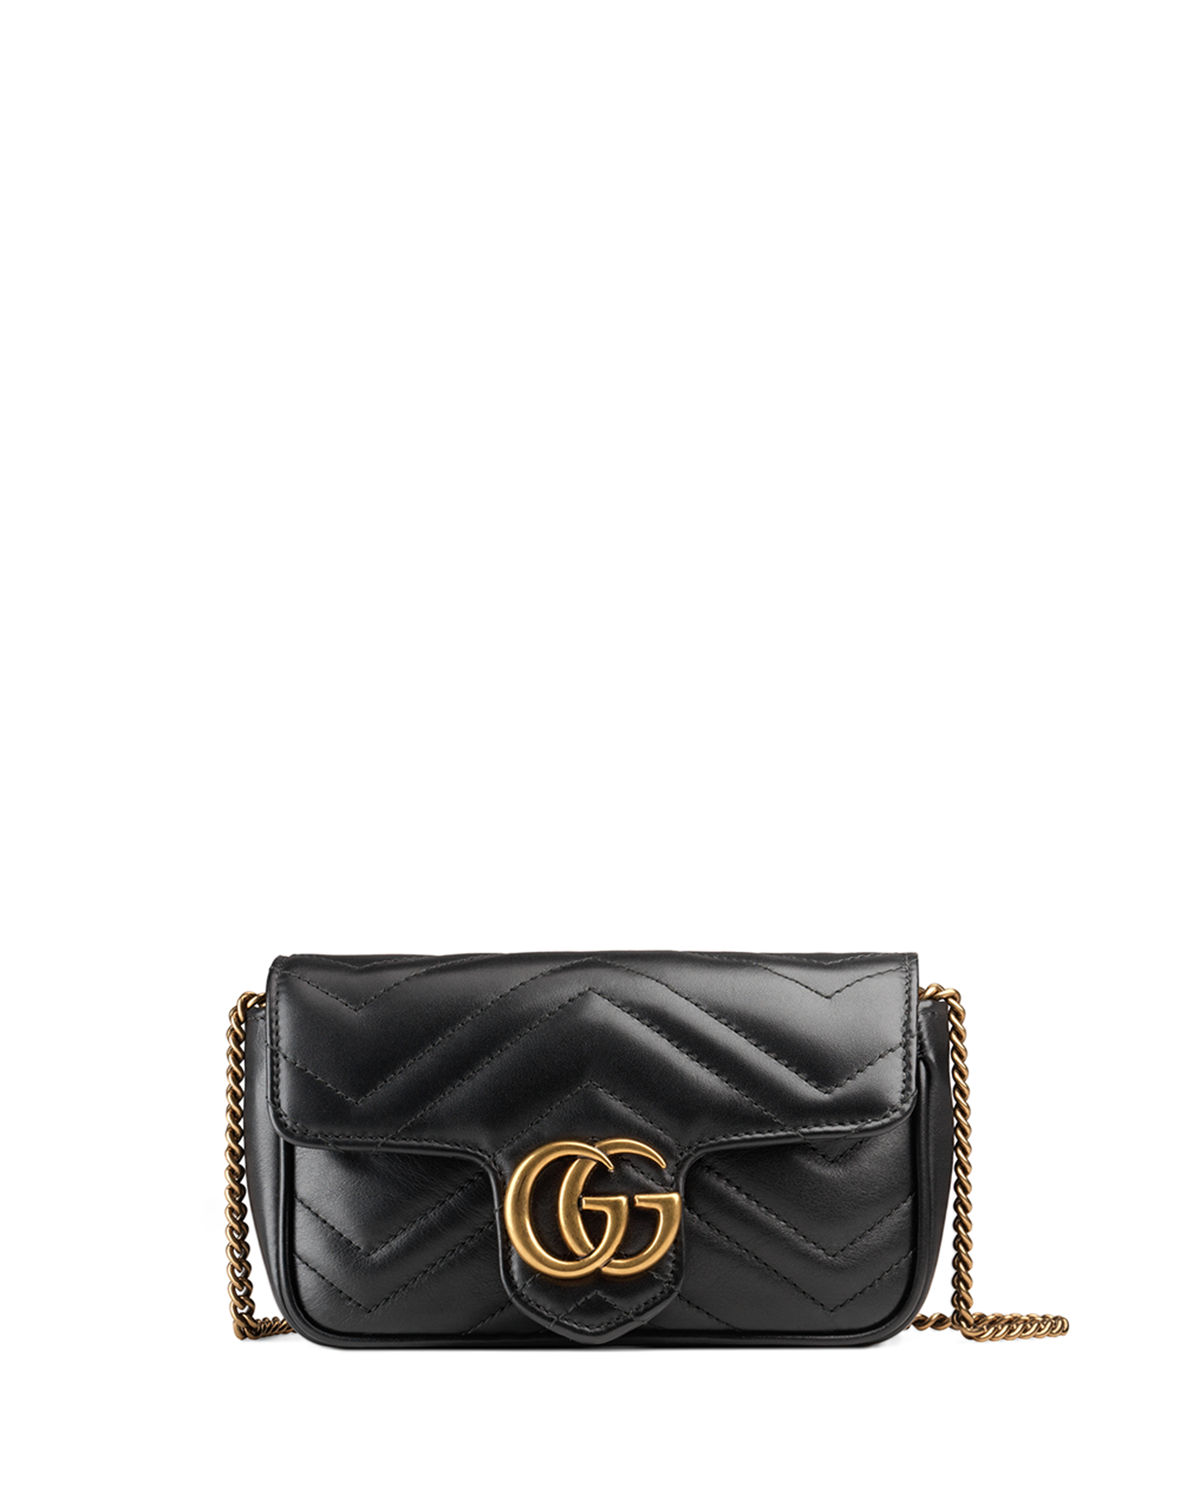 f07ec5b5800 Gucci GG Marmont Matelasse Leather Super Mini Bag